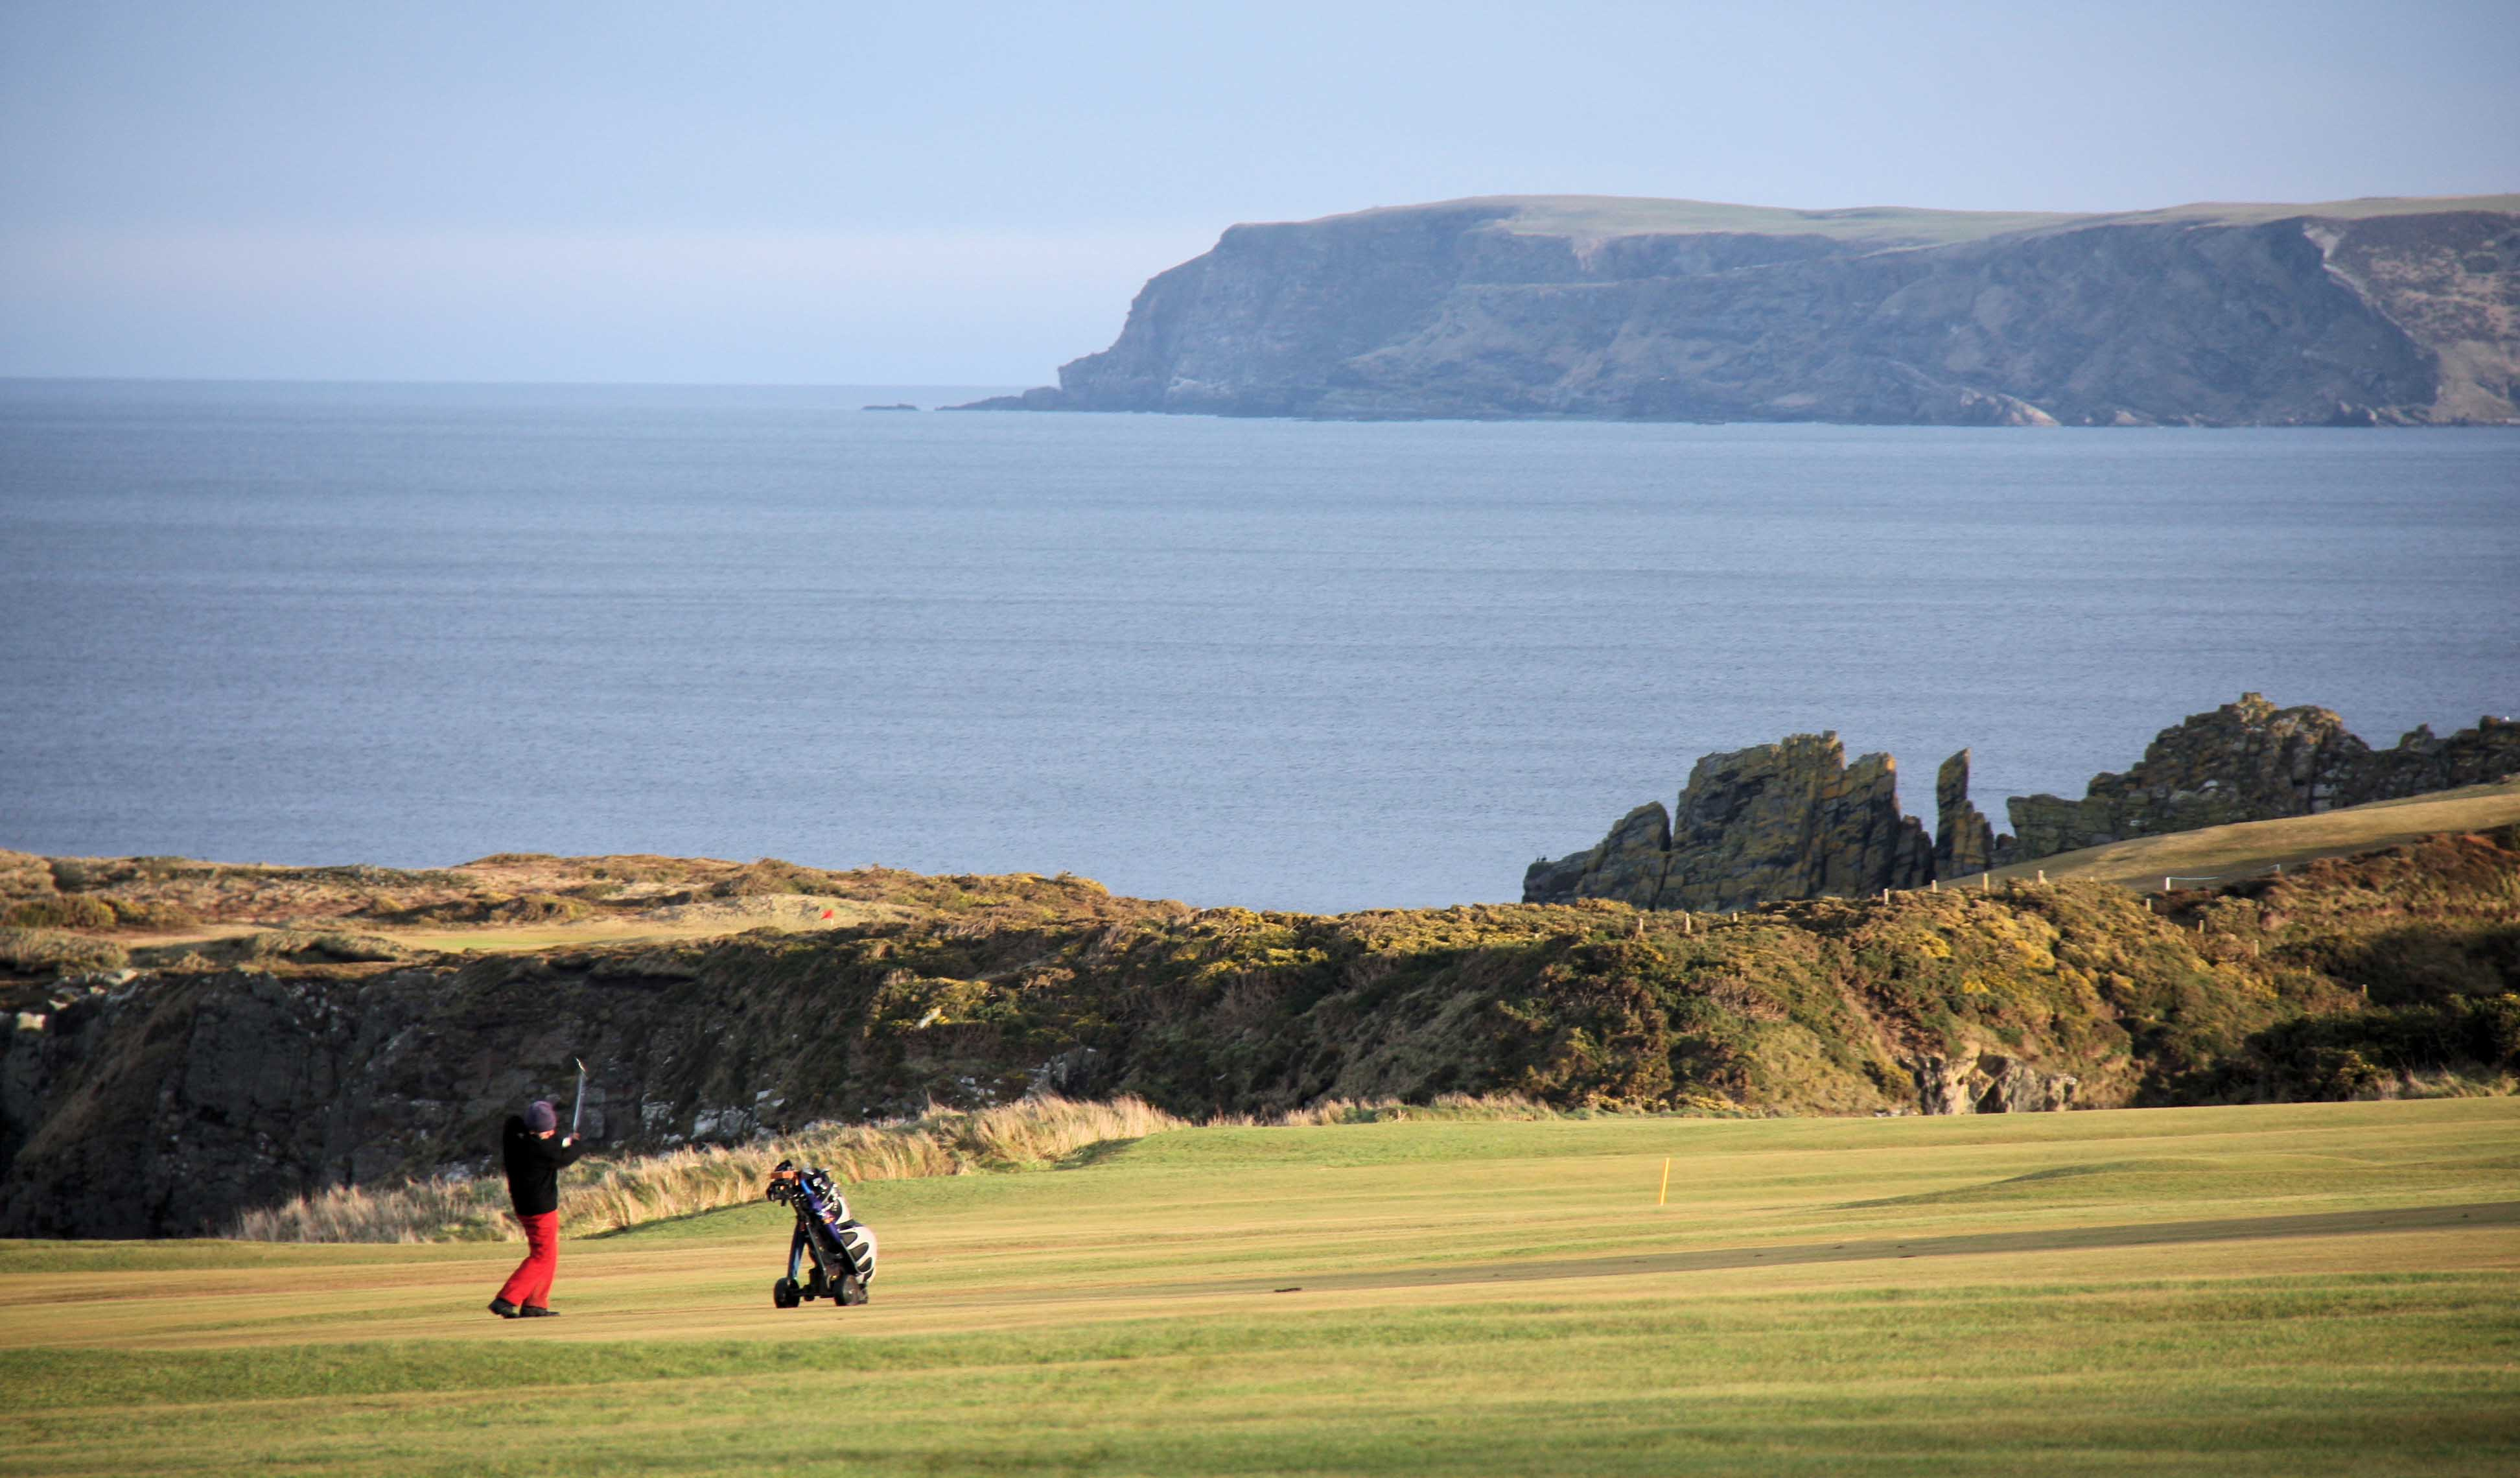 A golfer by the coastline and cliffs, Aberdeen.